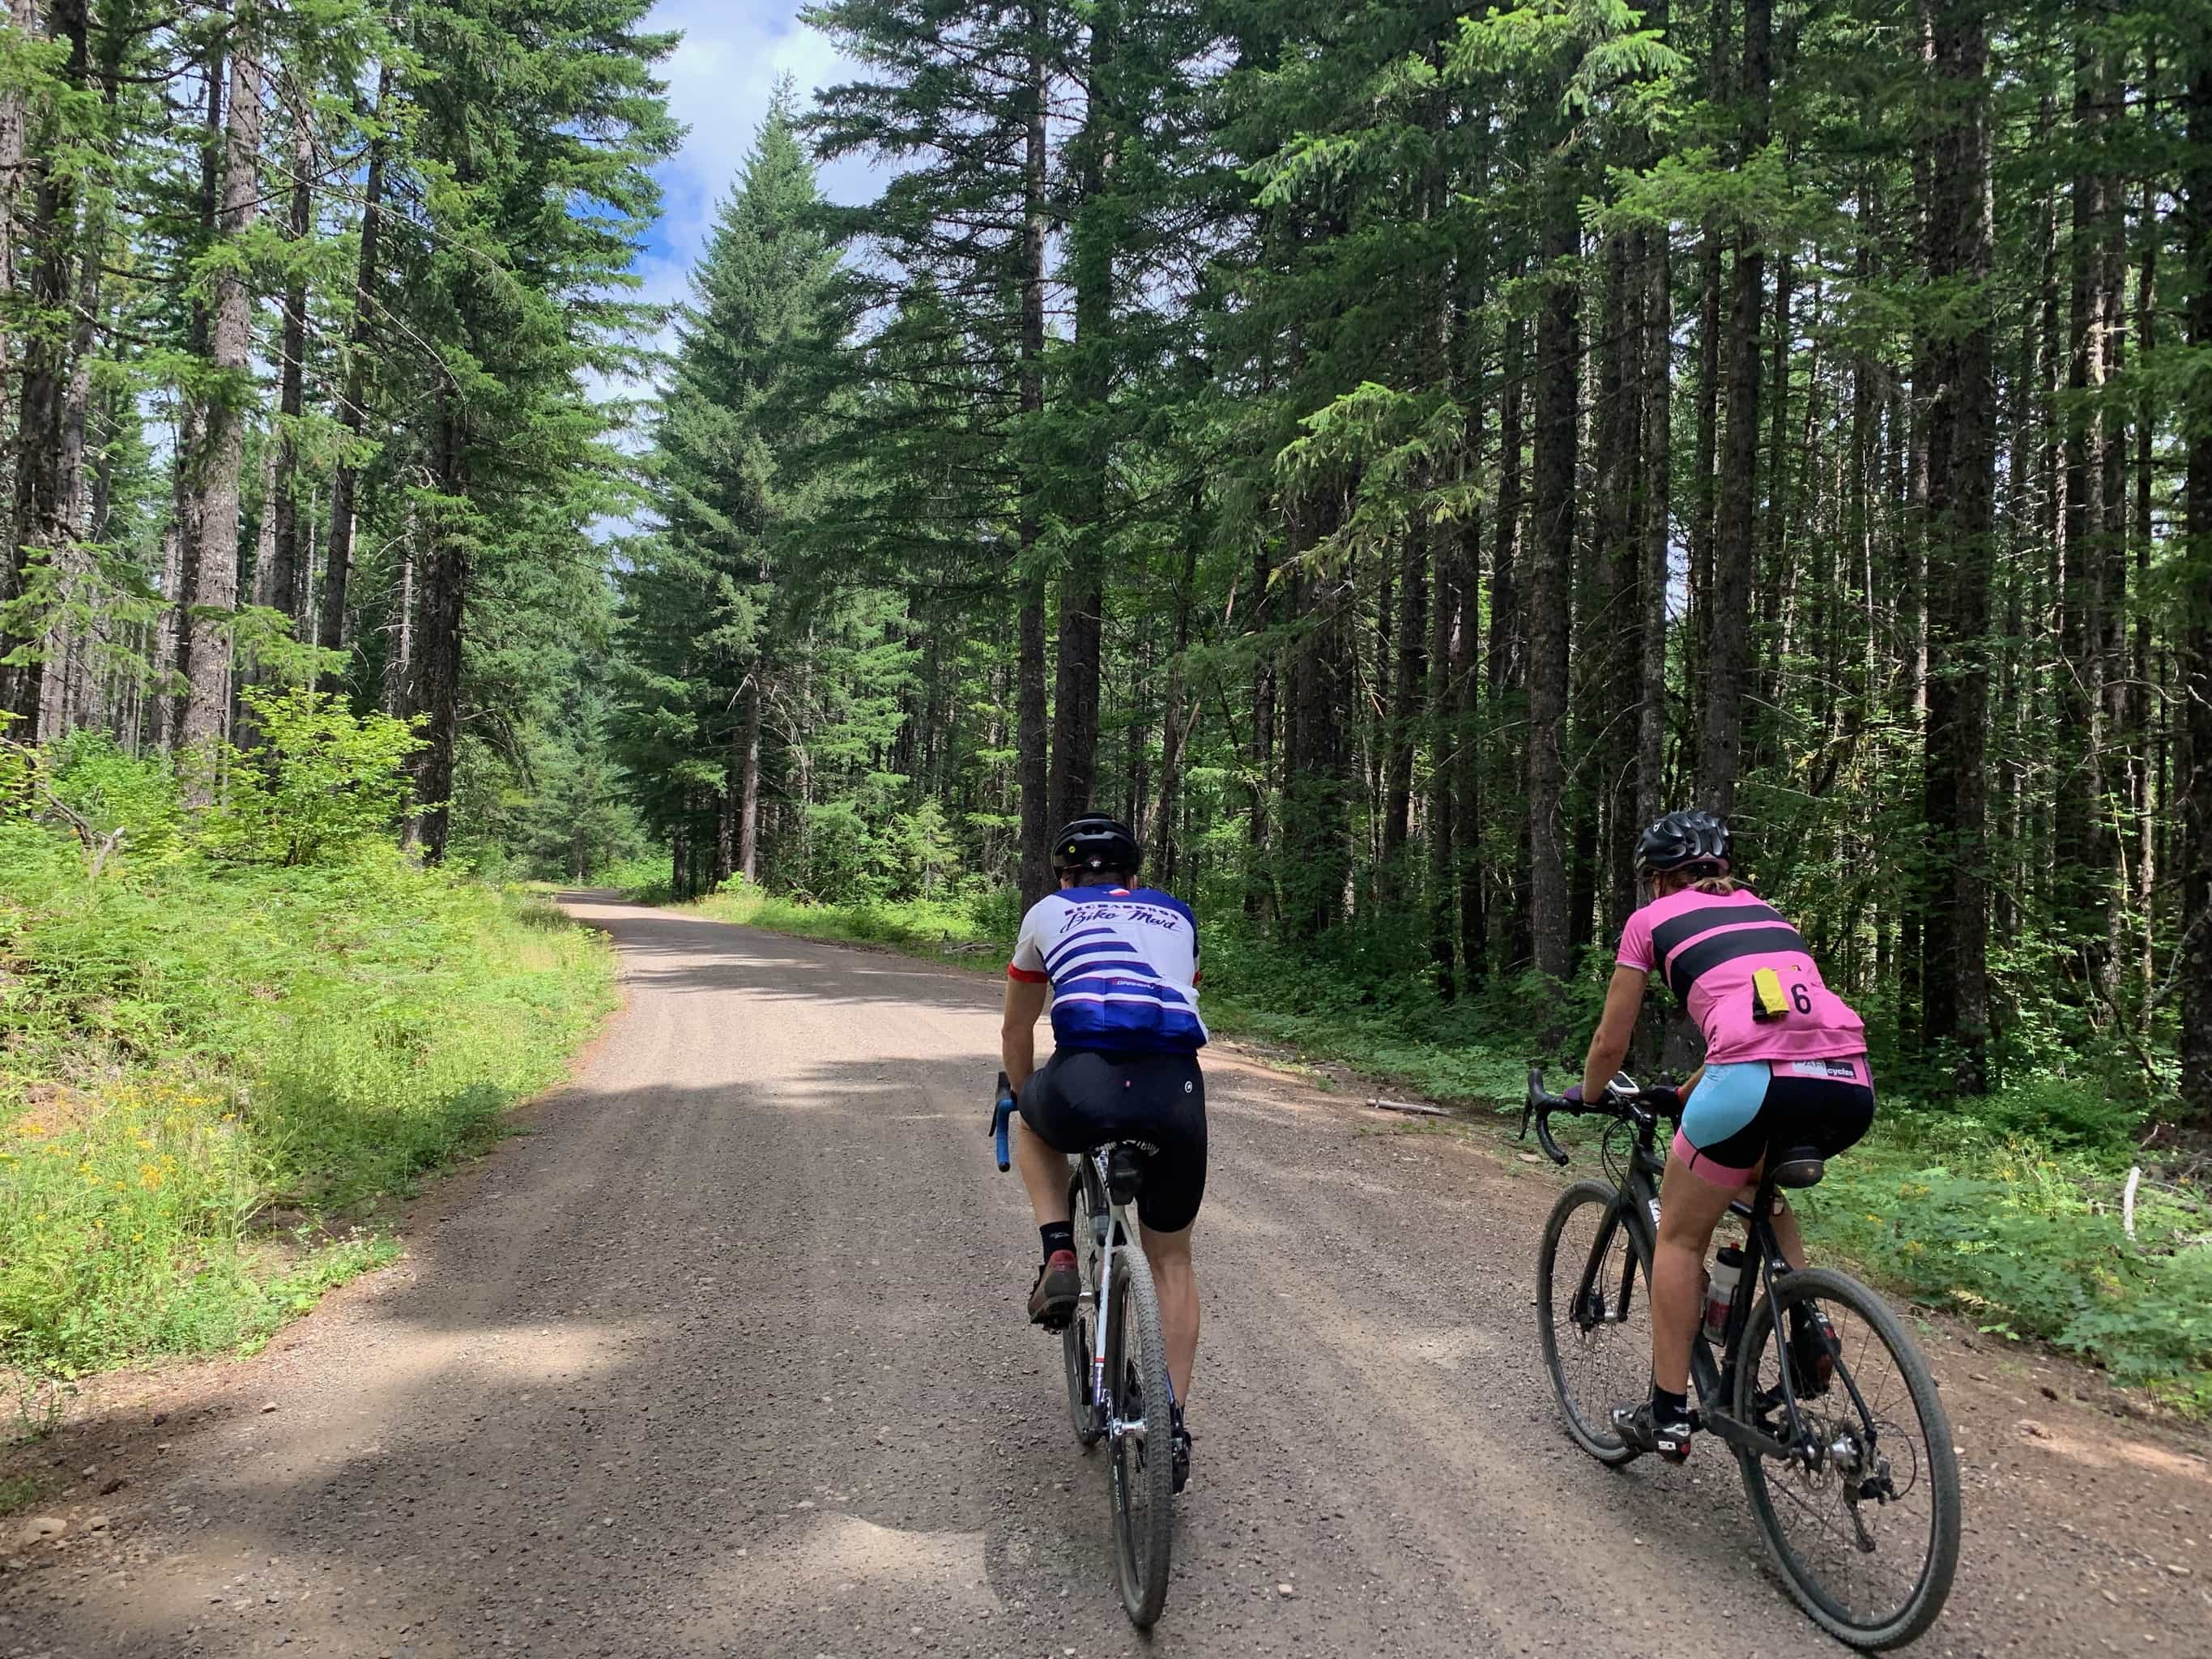 Two bike riders on gravel road approaching NF-66 near Stabler, Washington.